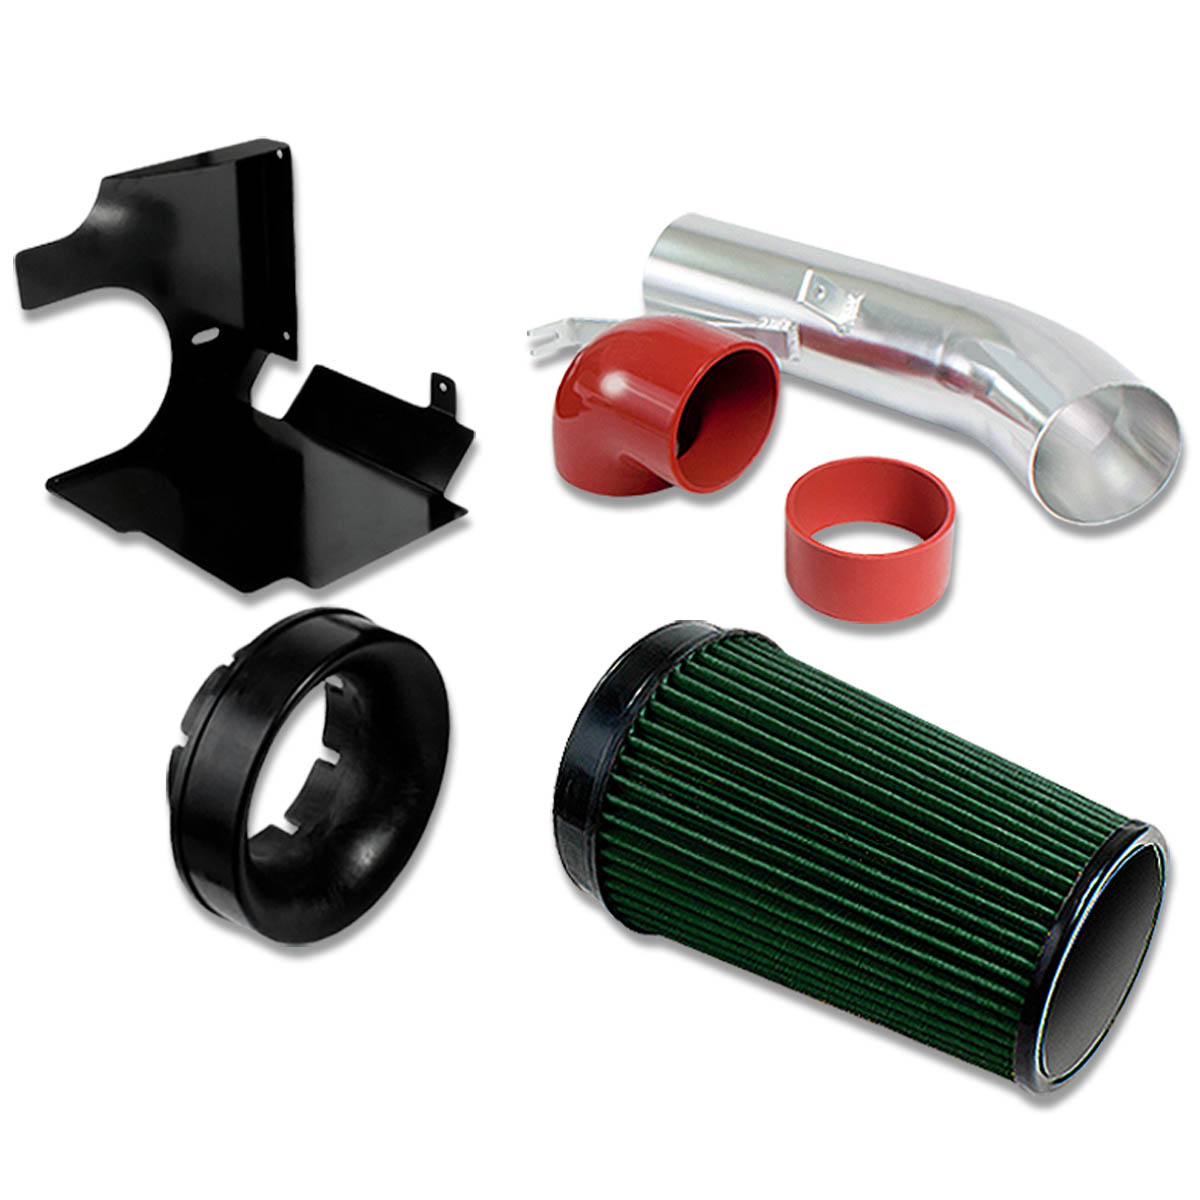 """For 99-06 GMT800 V8 Truck/SUV 4"""" Aluminum Air Intake System (Green Filter / Silver Pipe / Black Heat Shield)"""